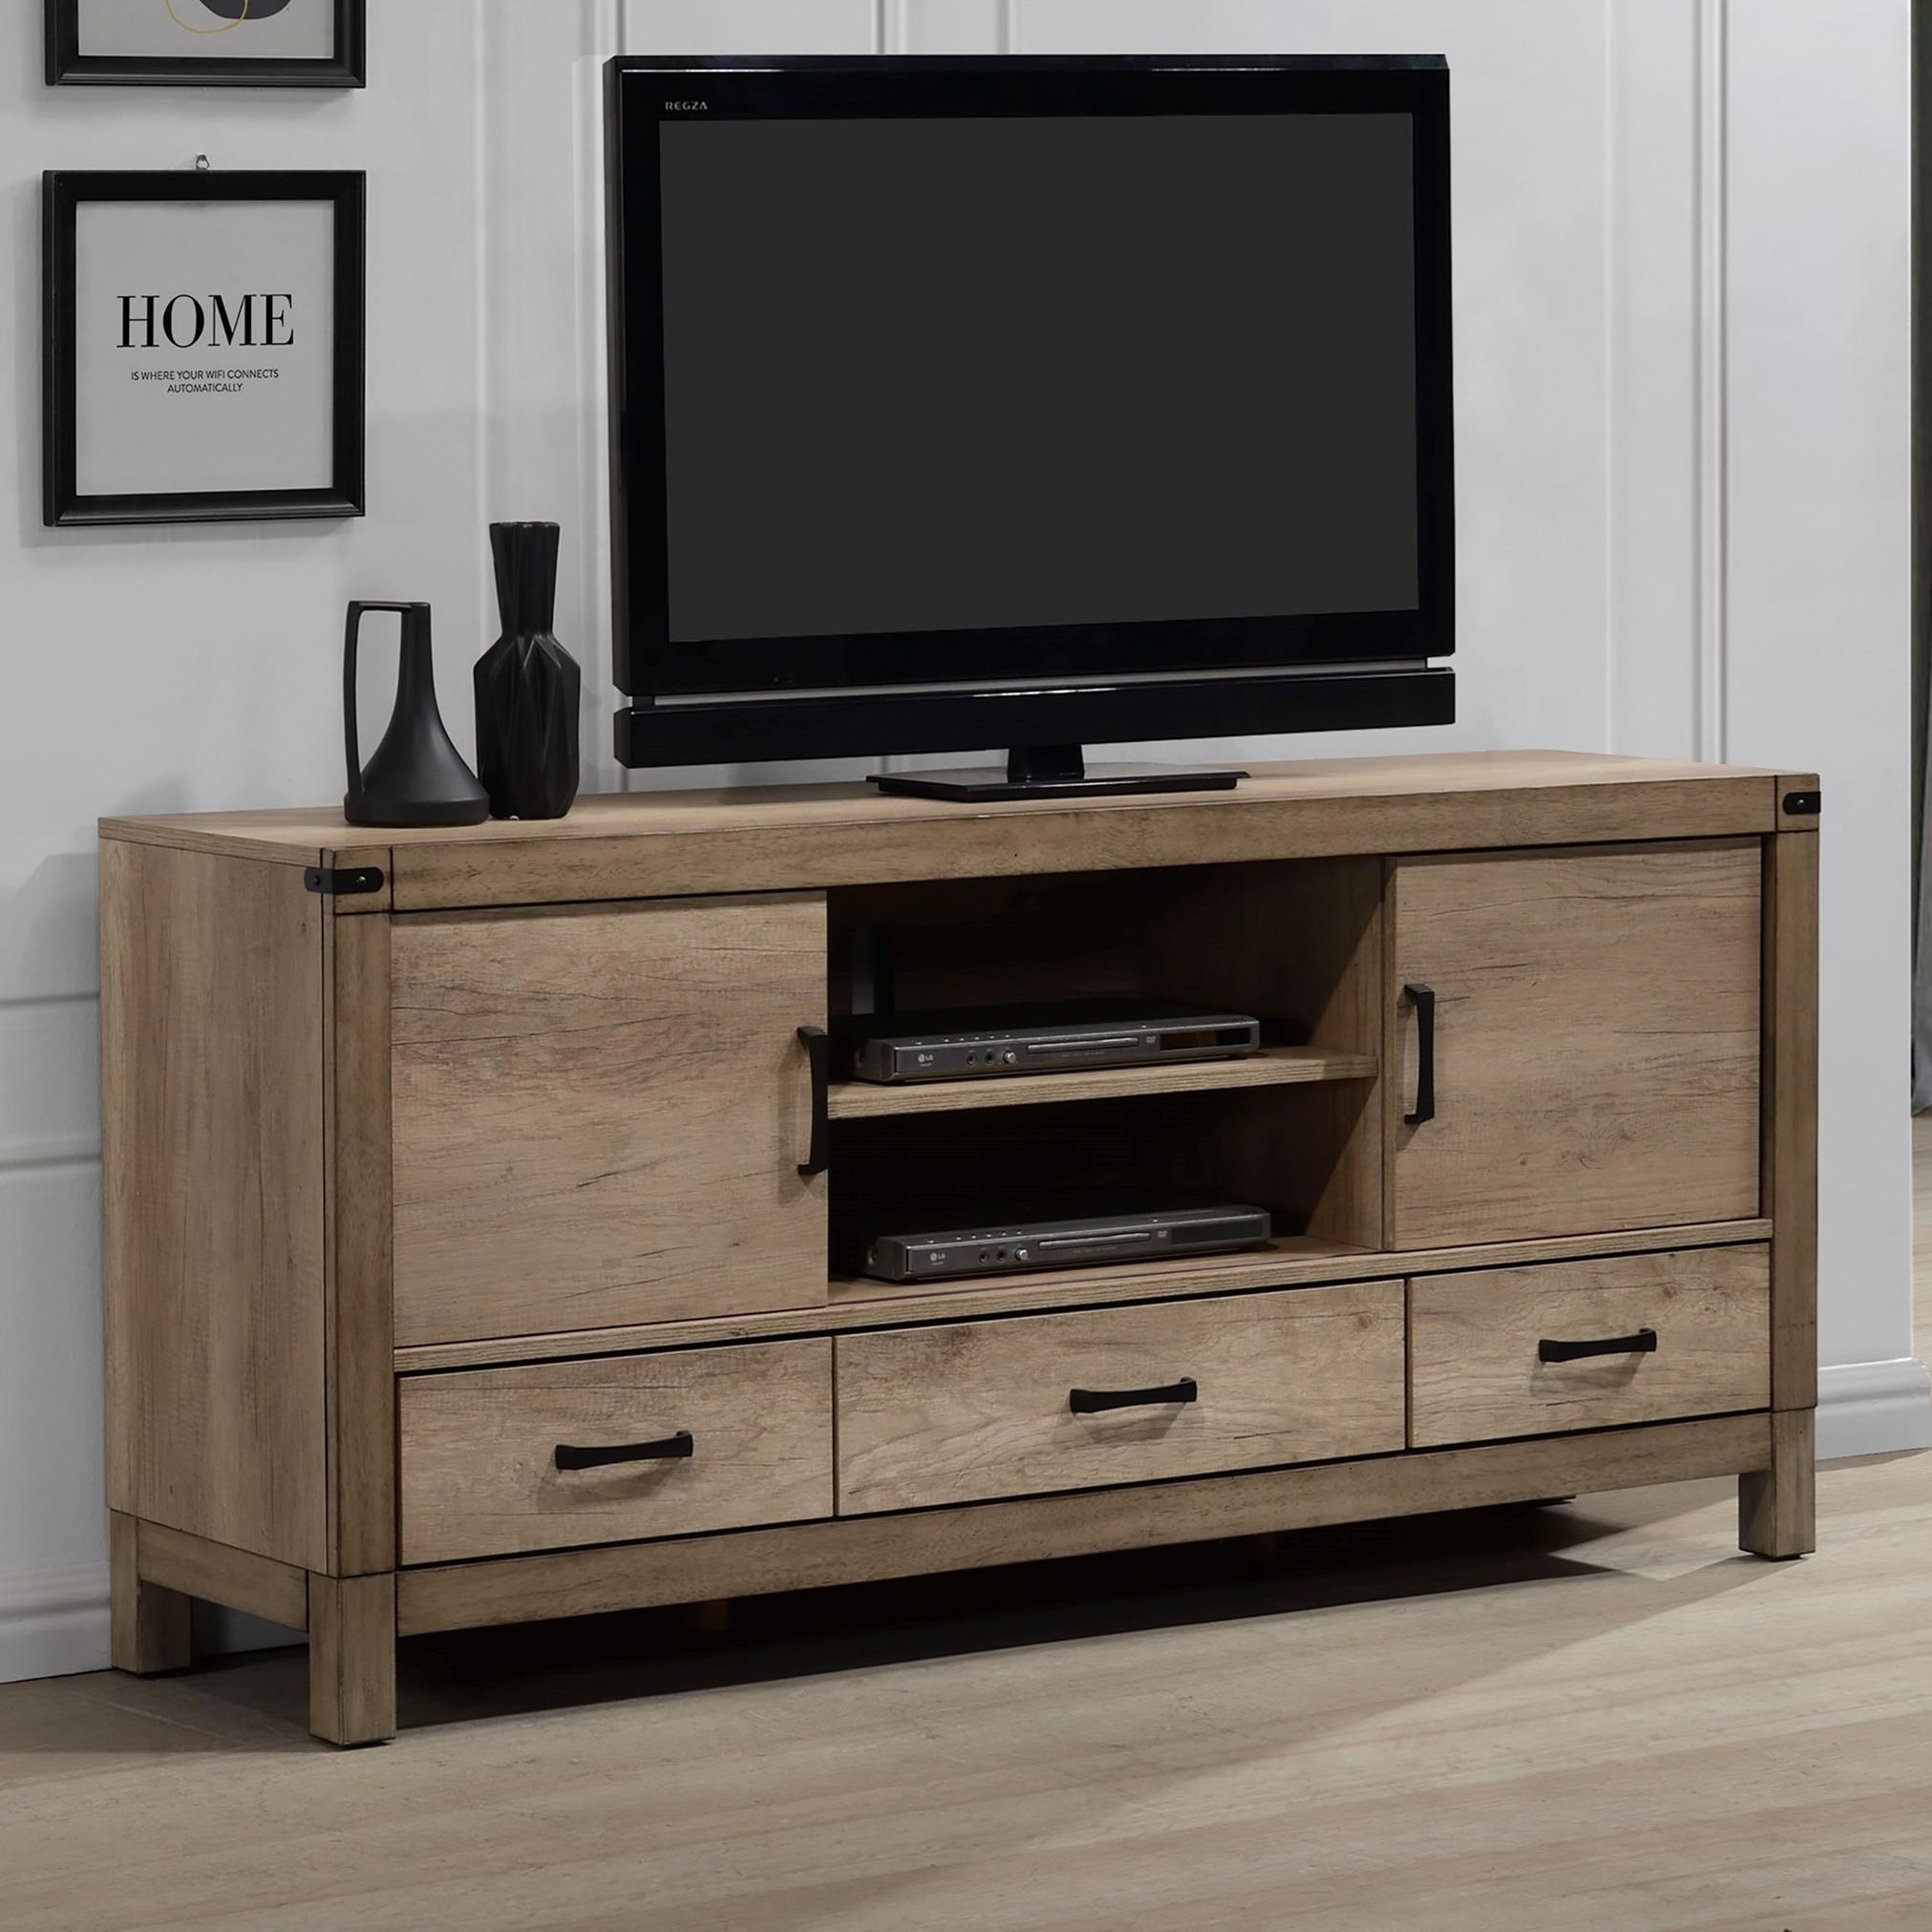 Matteo TV Stand by Crown Mark at Northeast Factory Direct